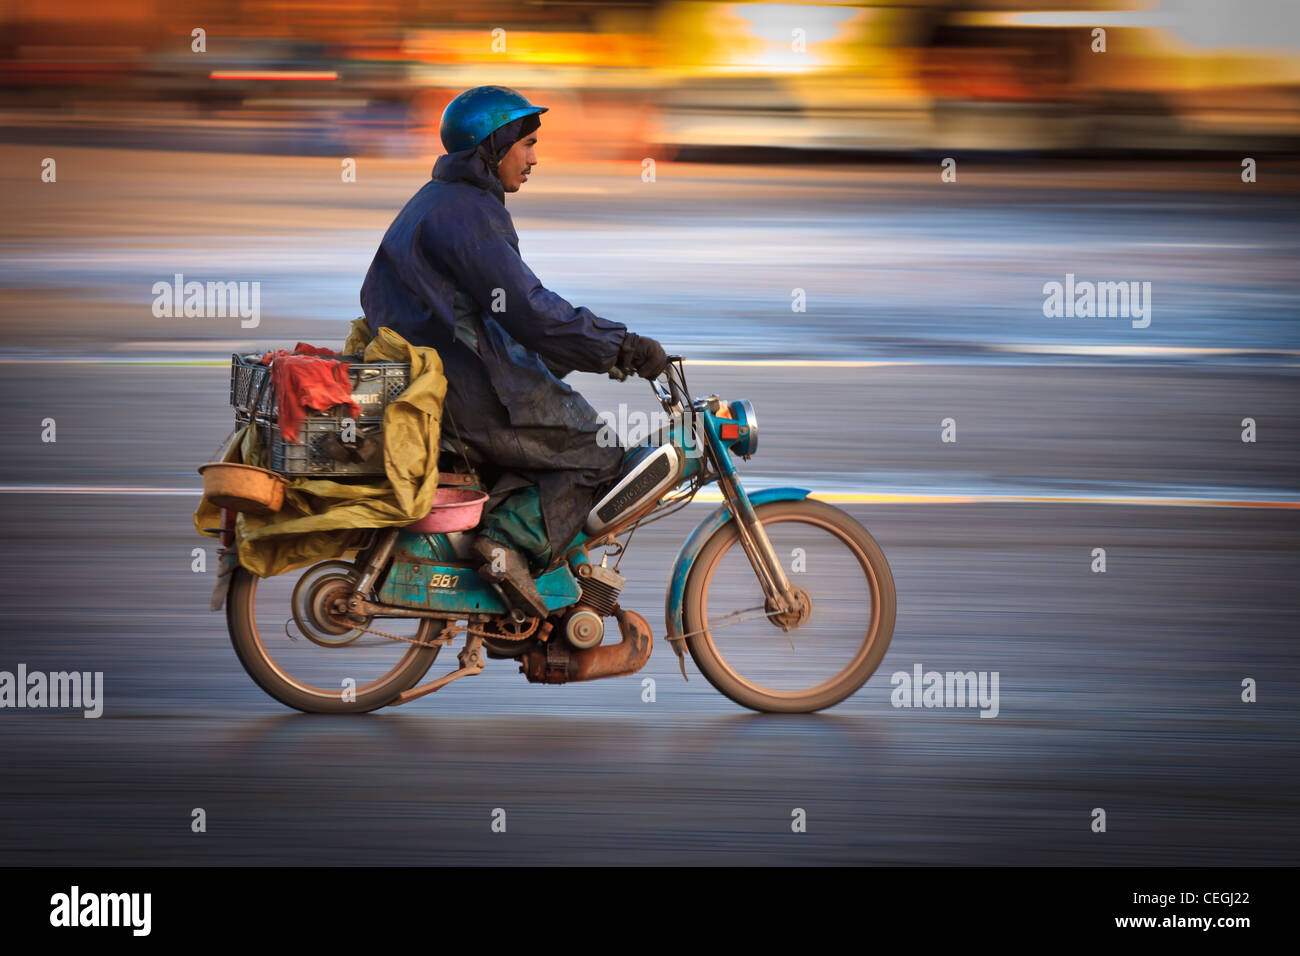 A man rides a moped in the morning light, Marrakesh, Morocco - Stock Image